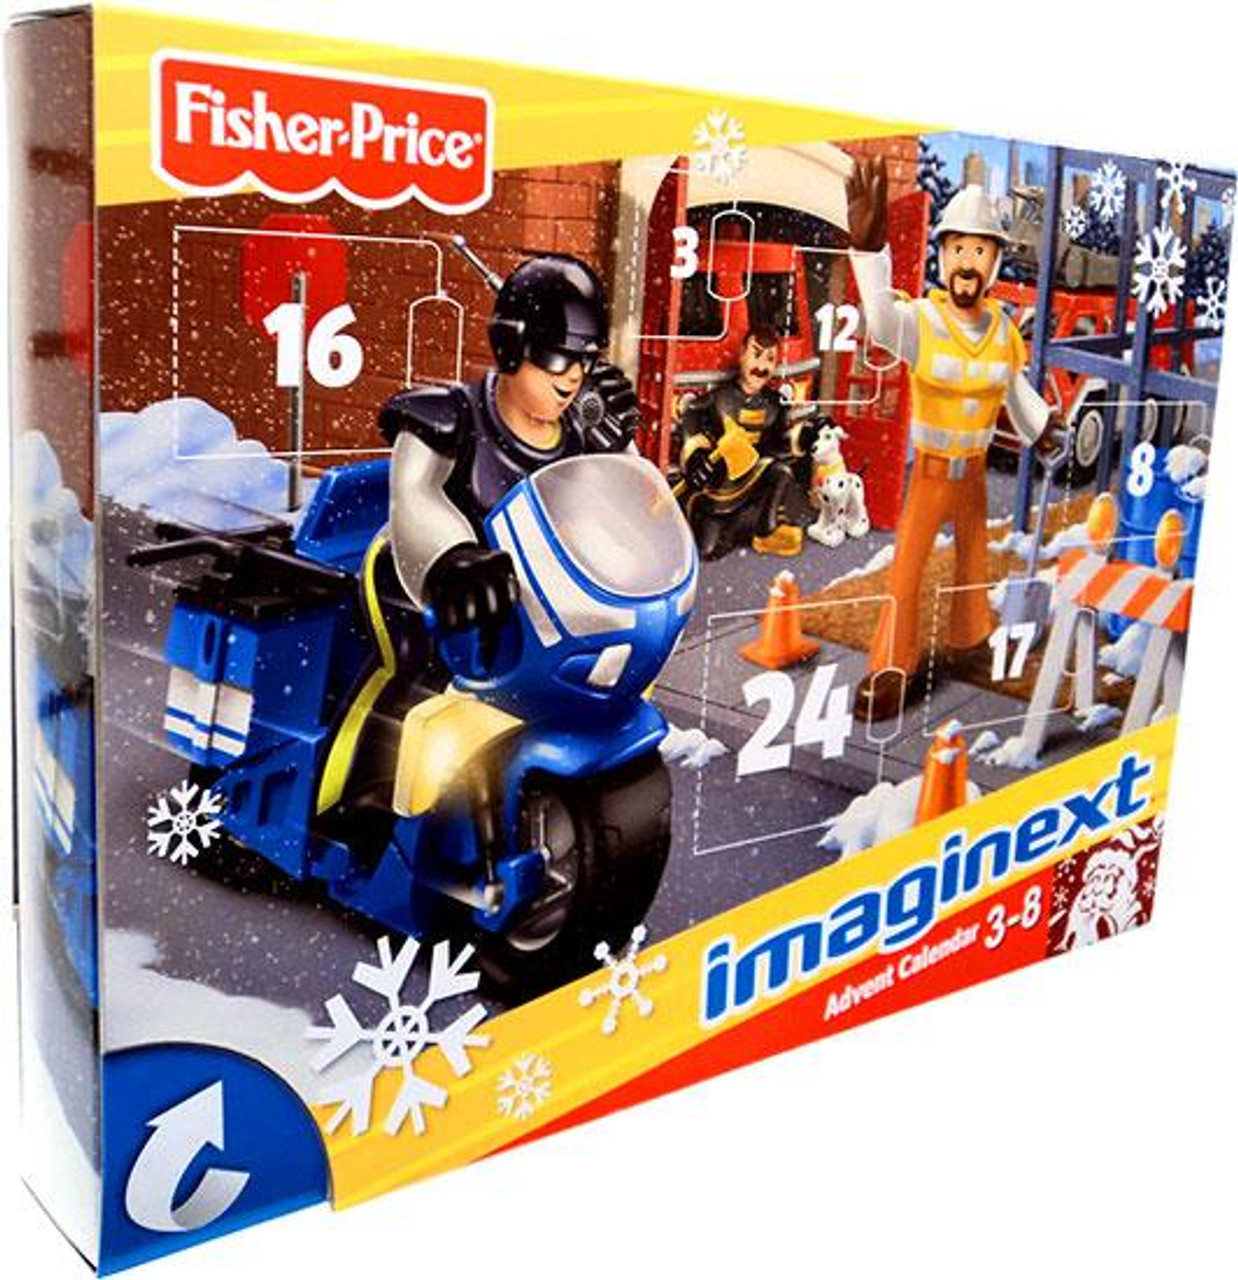 Fisher Price Imaginext 2011 Advent Calendar